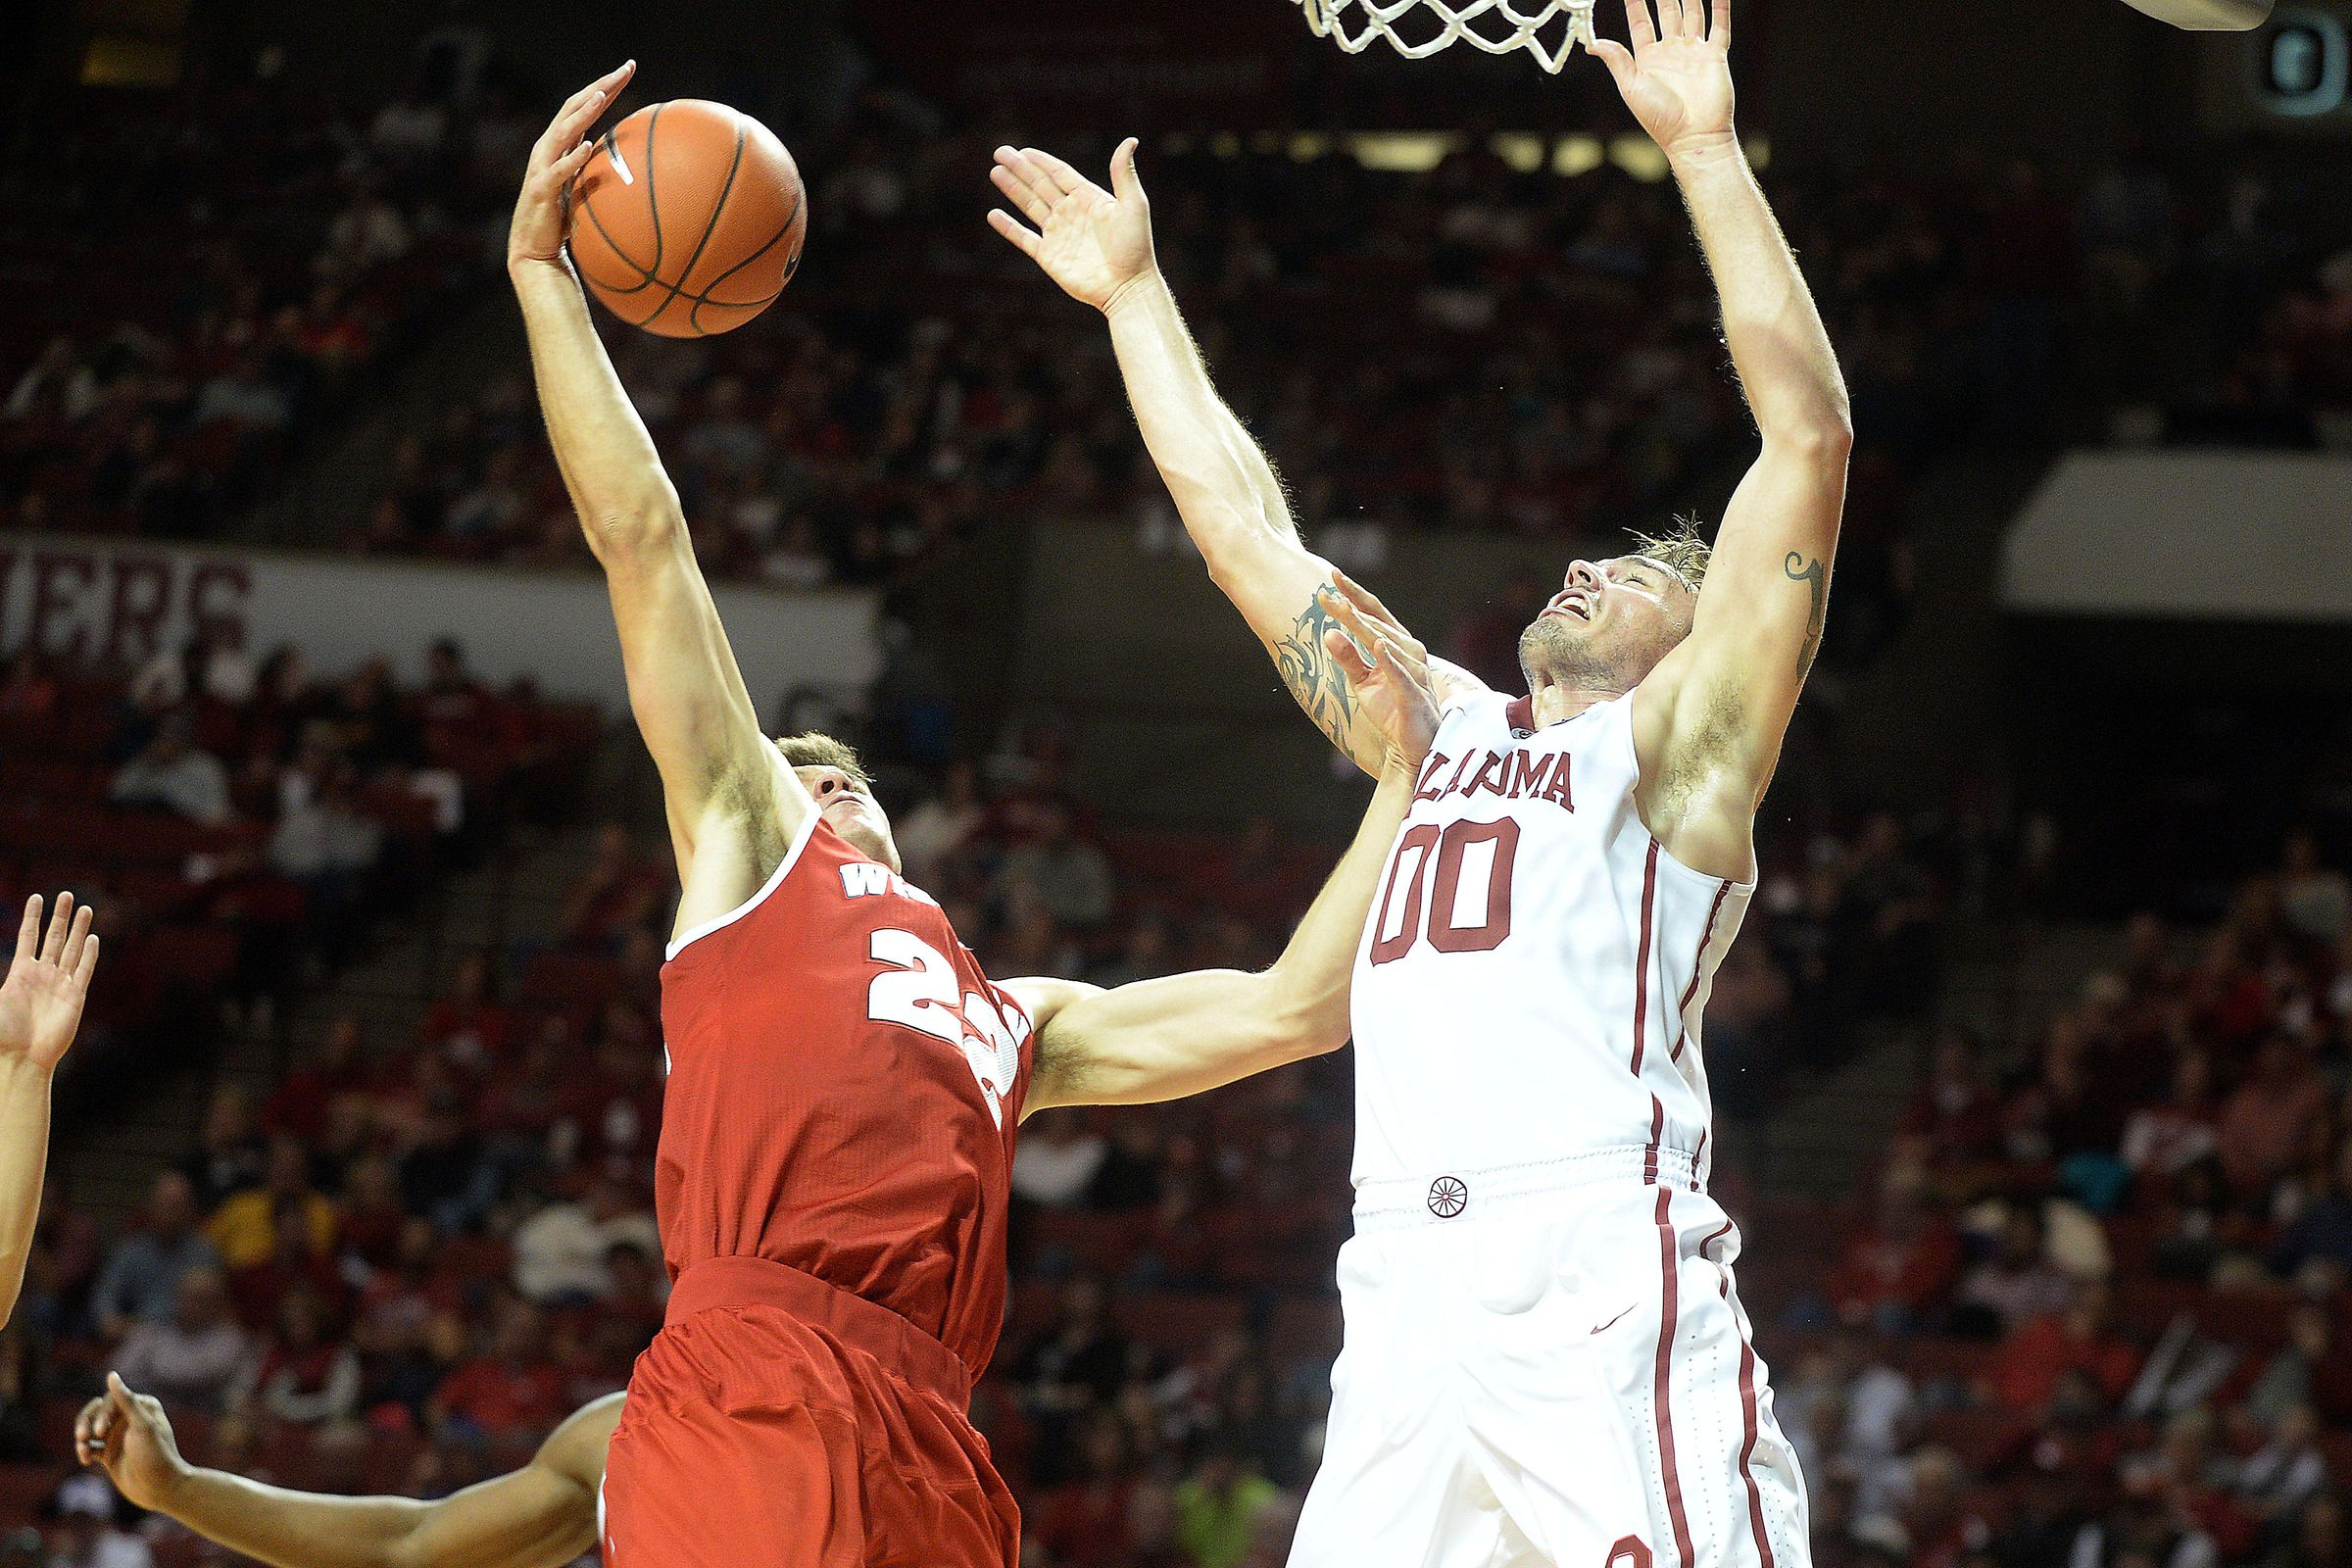 Wisconsin's offense stumbles in 65-48 loss to No. 7 Oklahoma